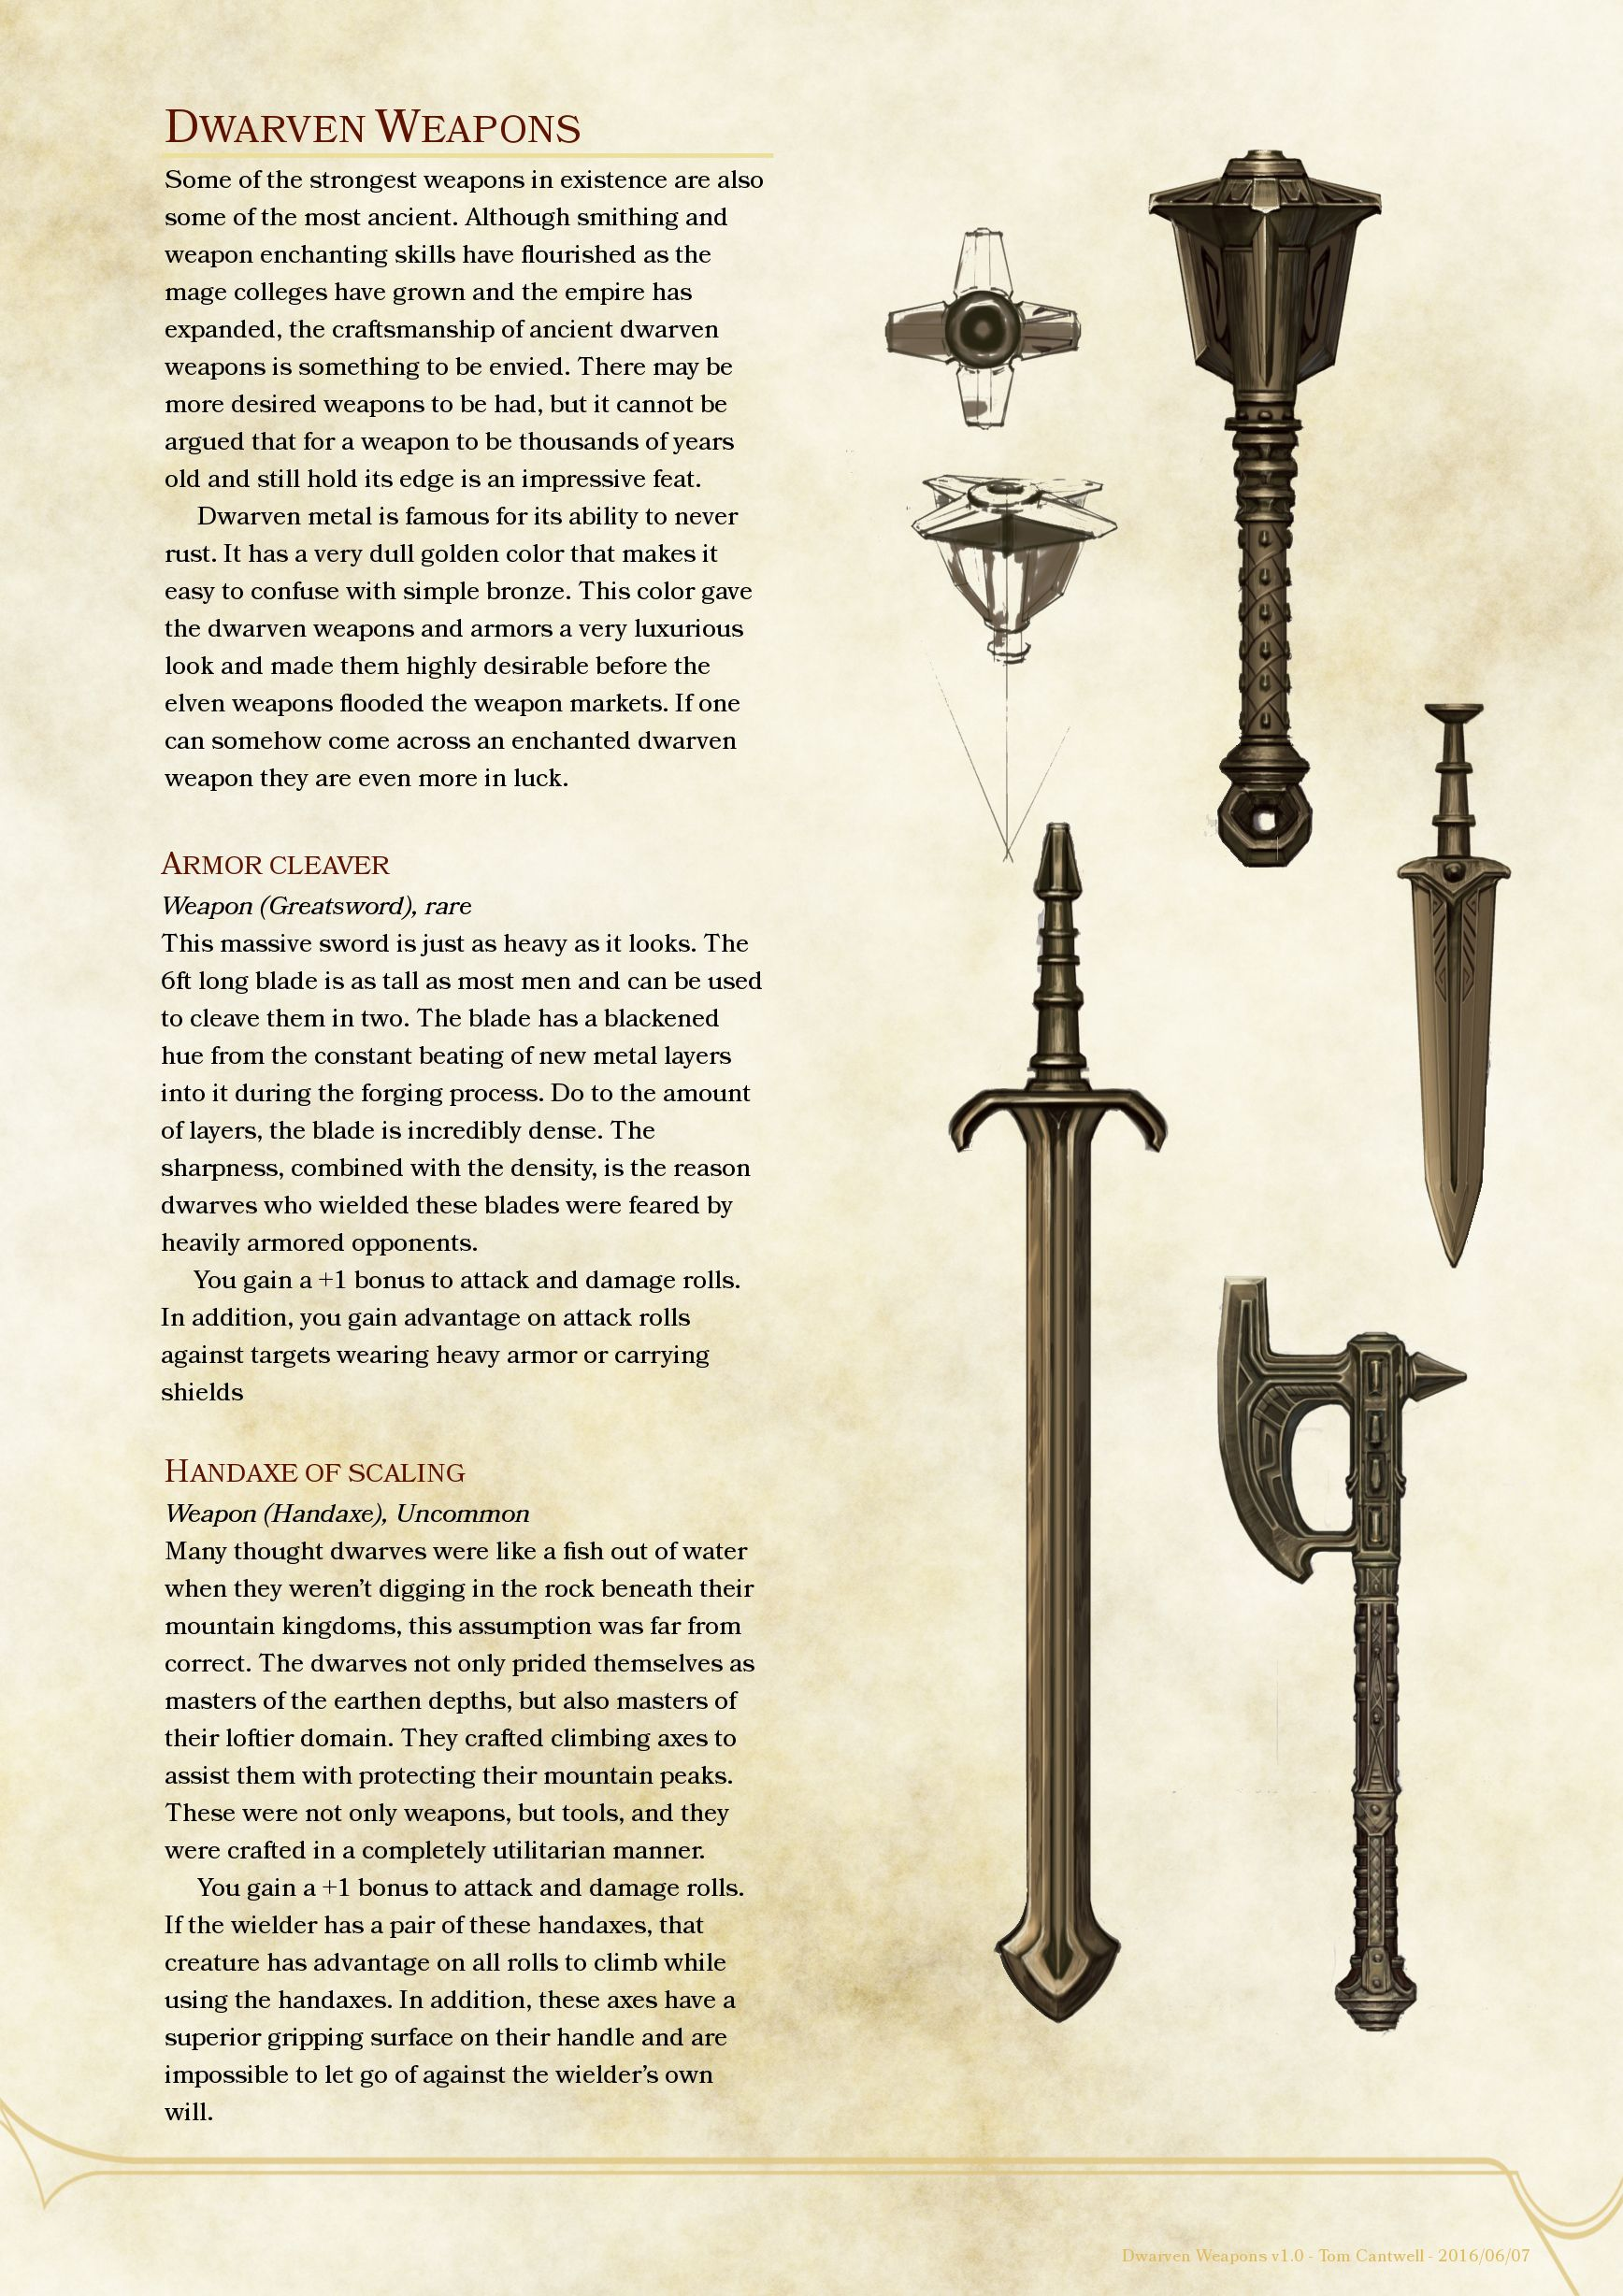 Dwarven Magic Weapons | D&D in 2019 | Dnd 5e homebrew